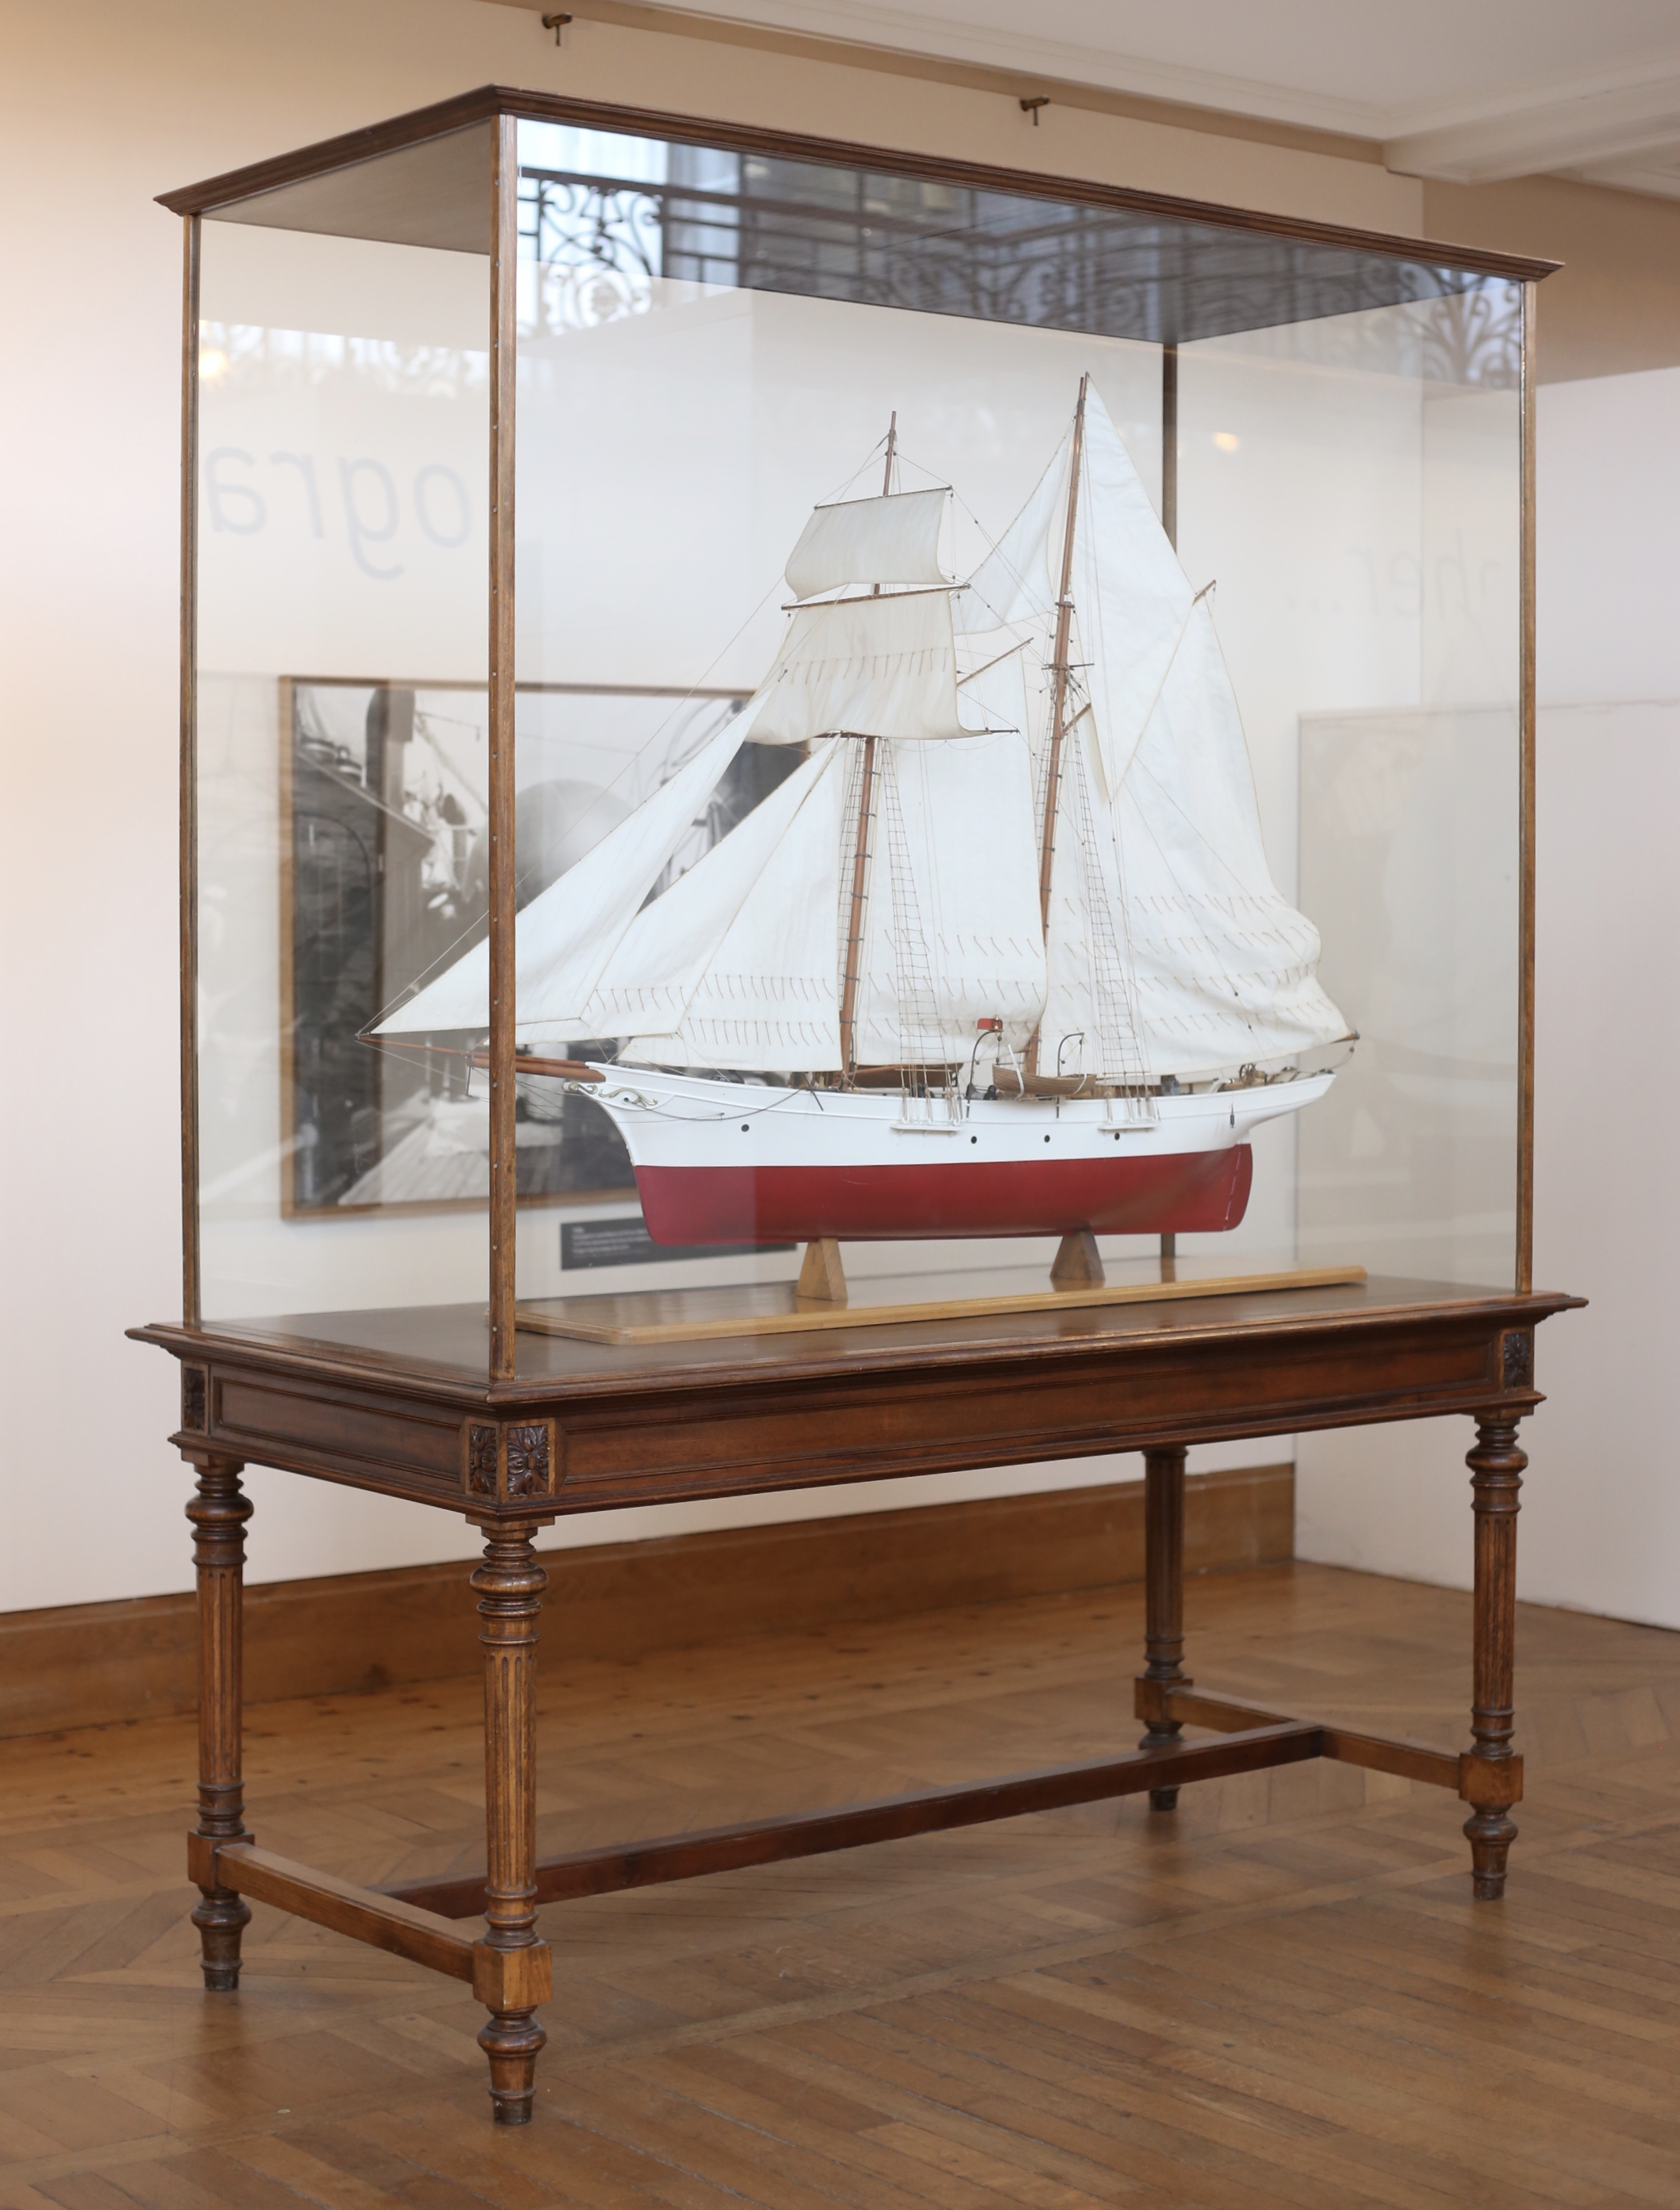 An old glass cabinet with a model ship inside - Monaco's aquarium museum.